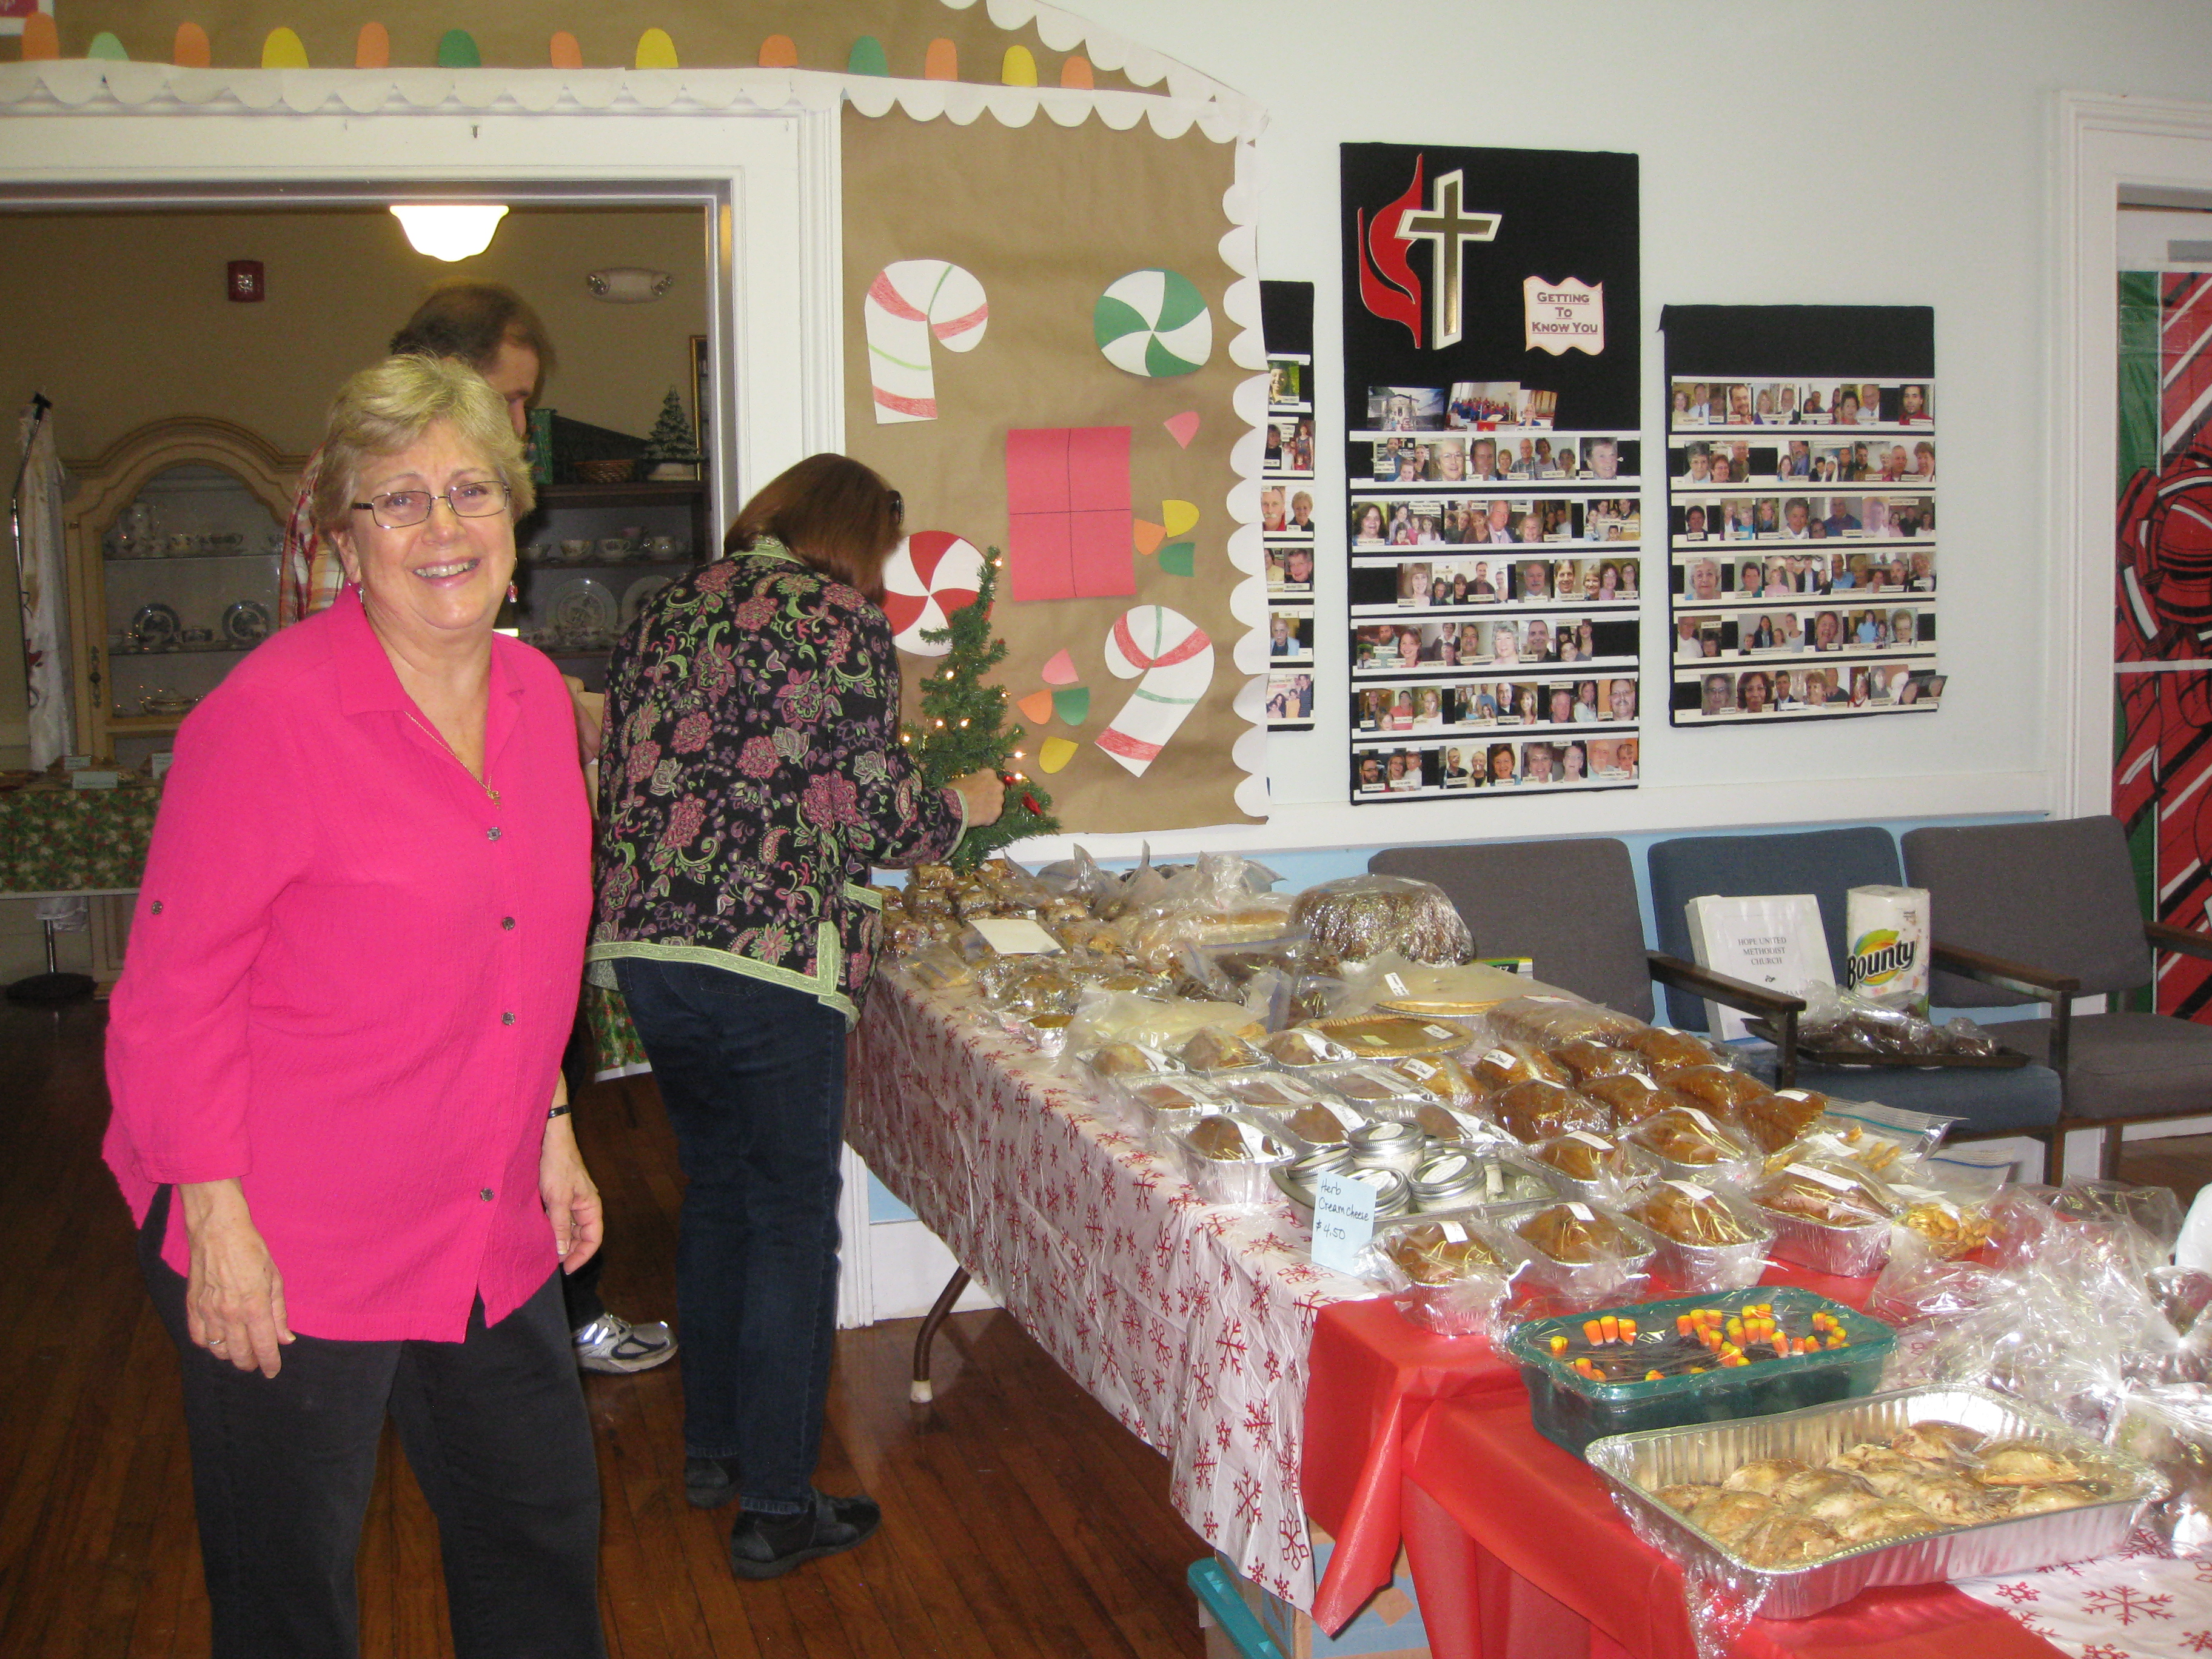 Joan checks out the baked goods